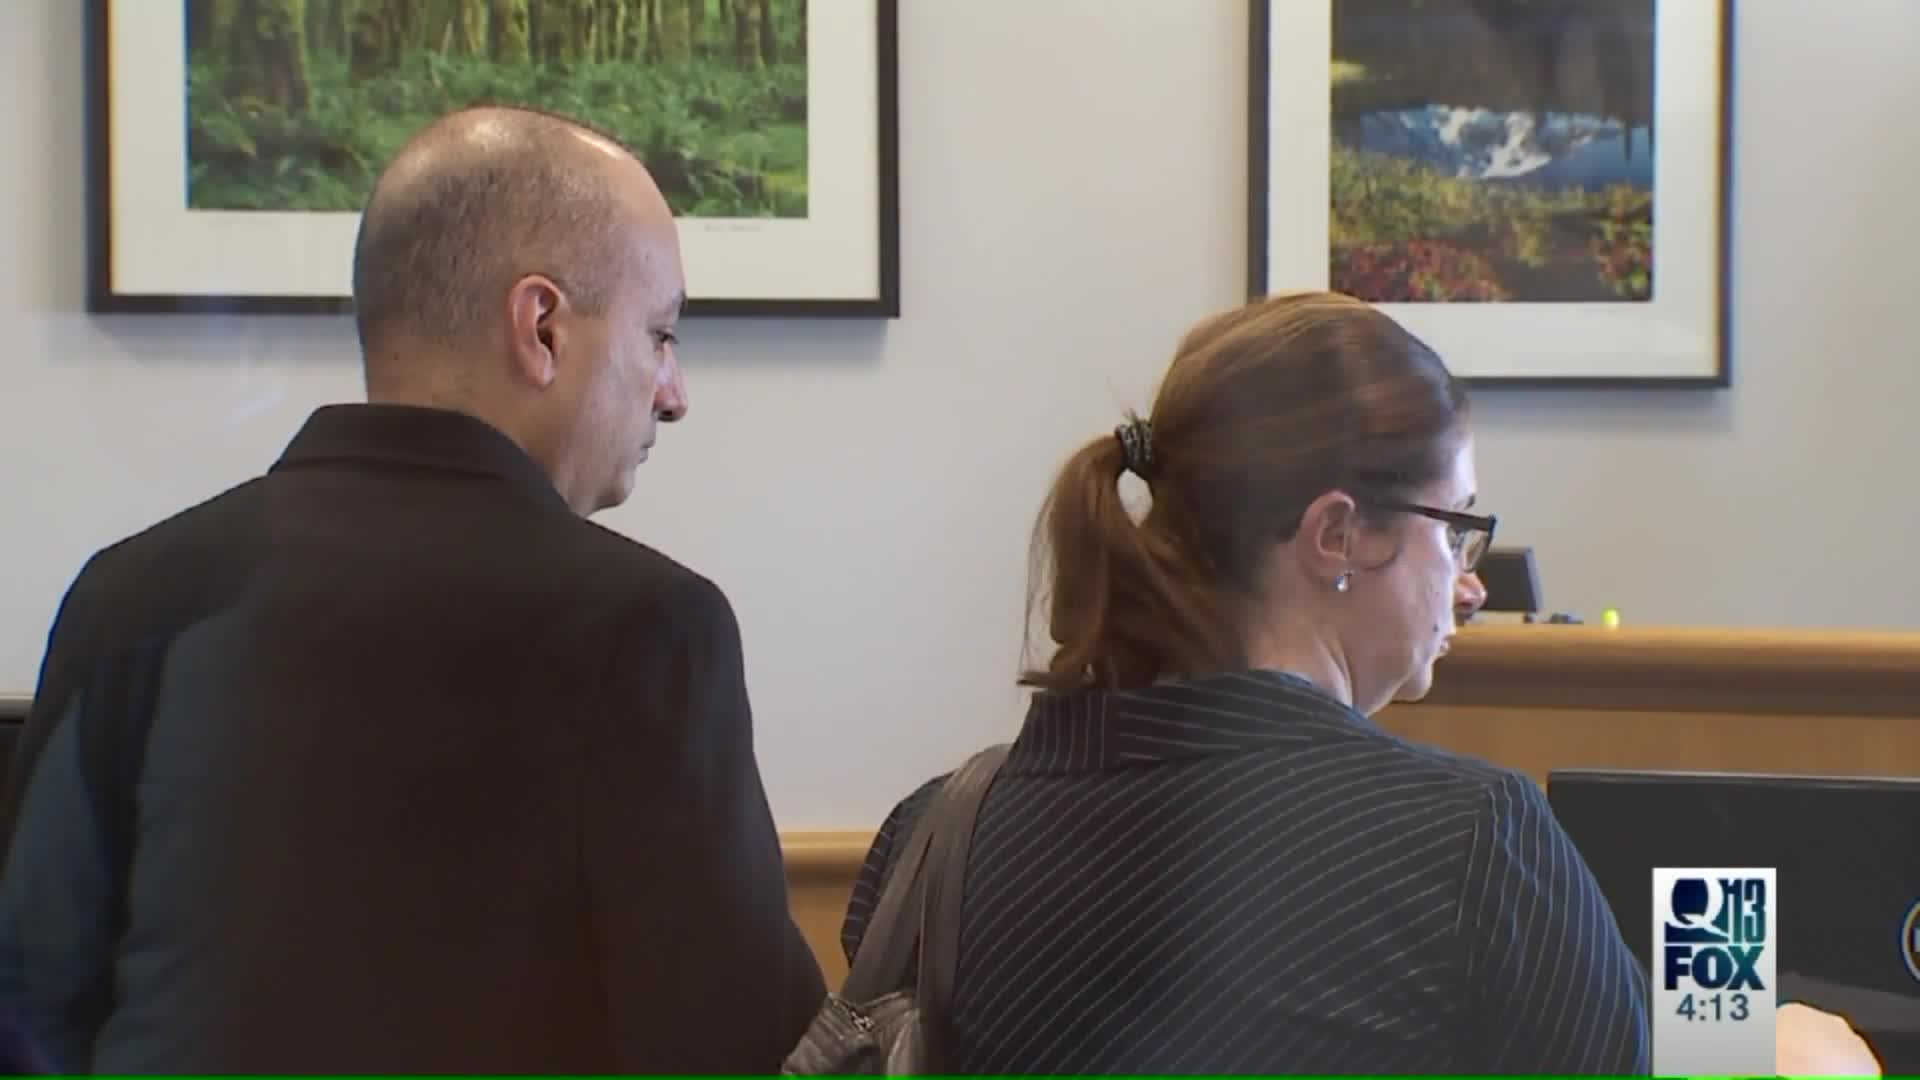 Seattle Police Sergeant Pleads Not Guilty To Child Rape, Molestation Charges